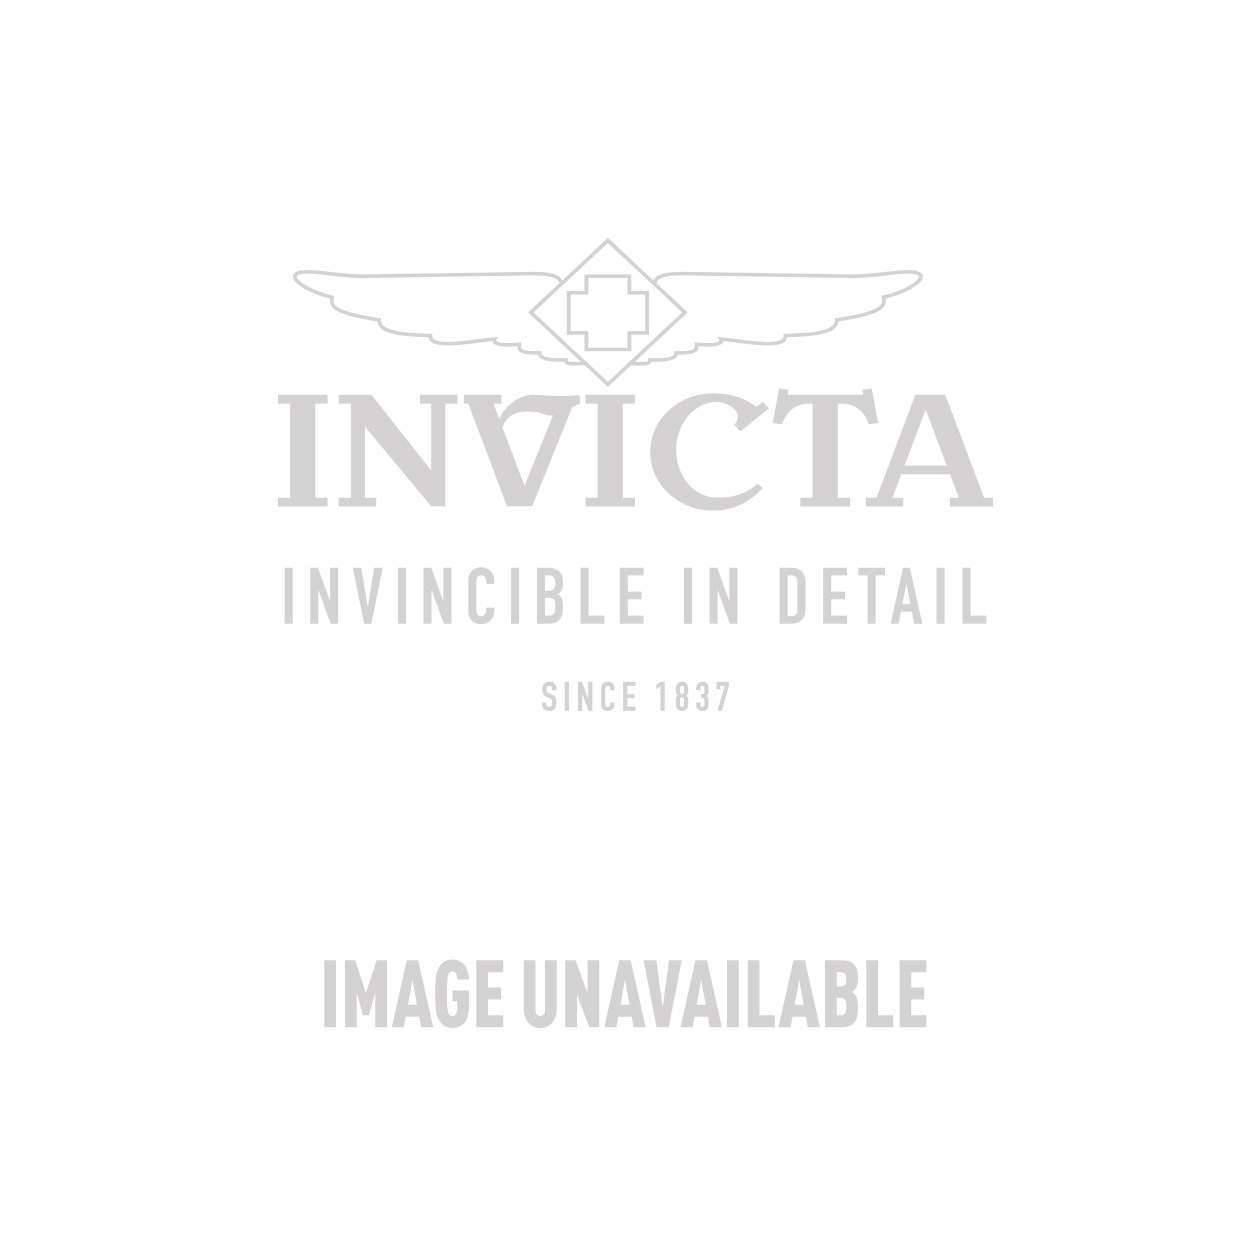 Invicta Disney Limited Edition Mens Quartz 39.5mm Stainless Steel Case White Dial - Model 24398